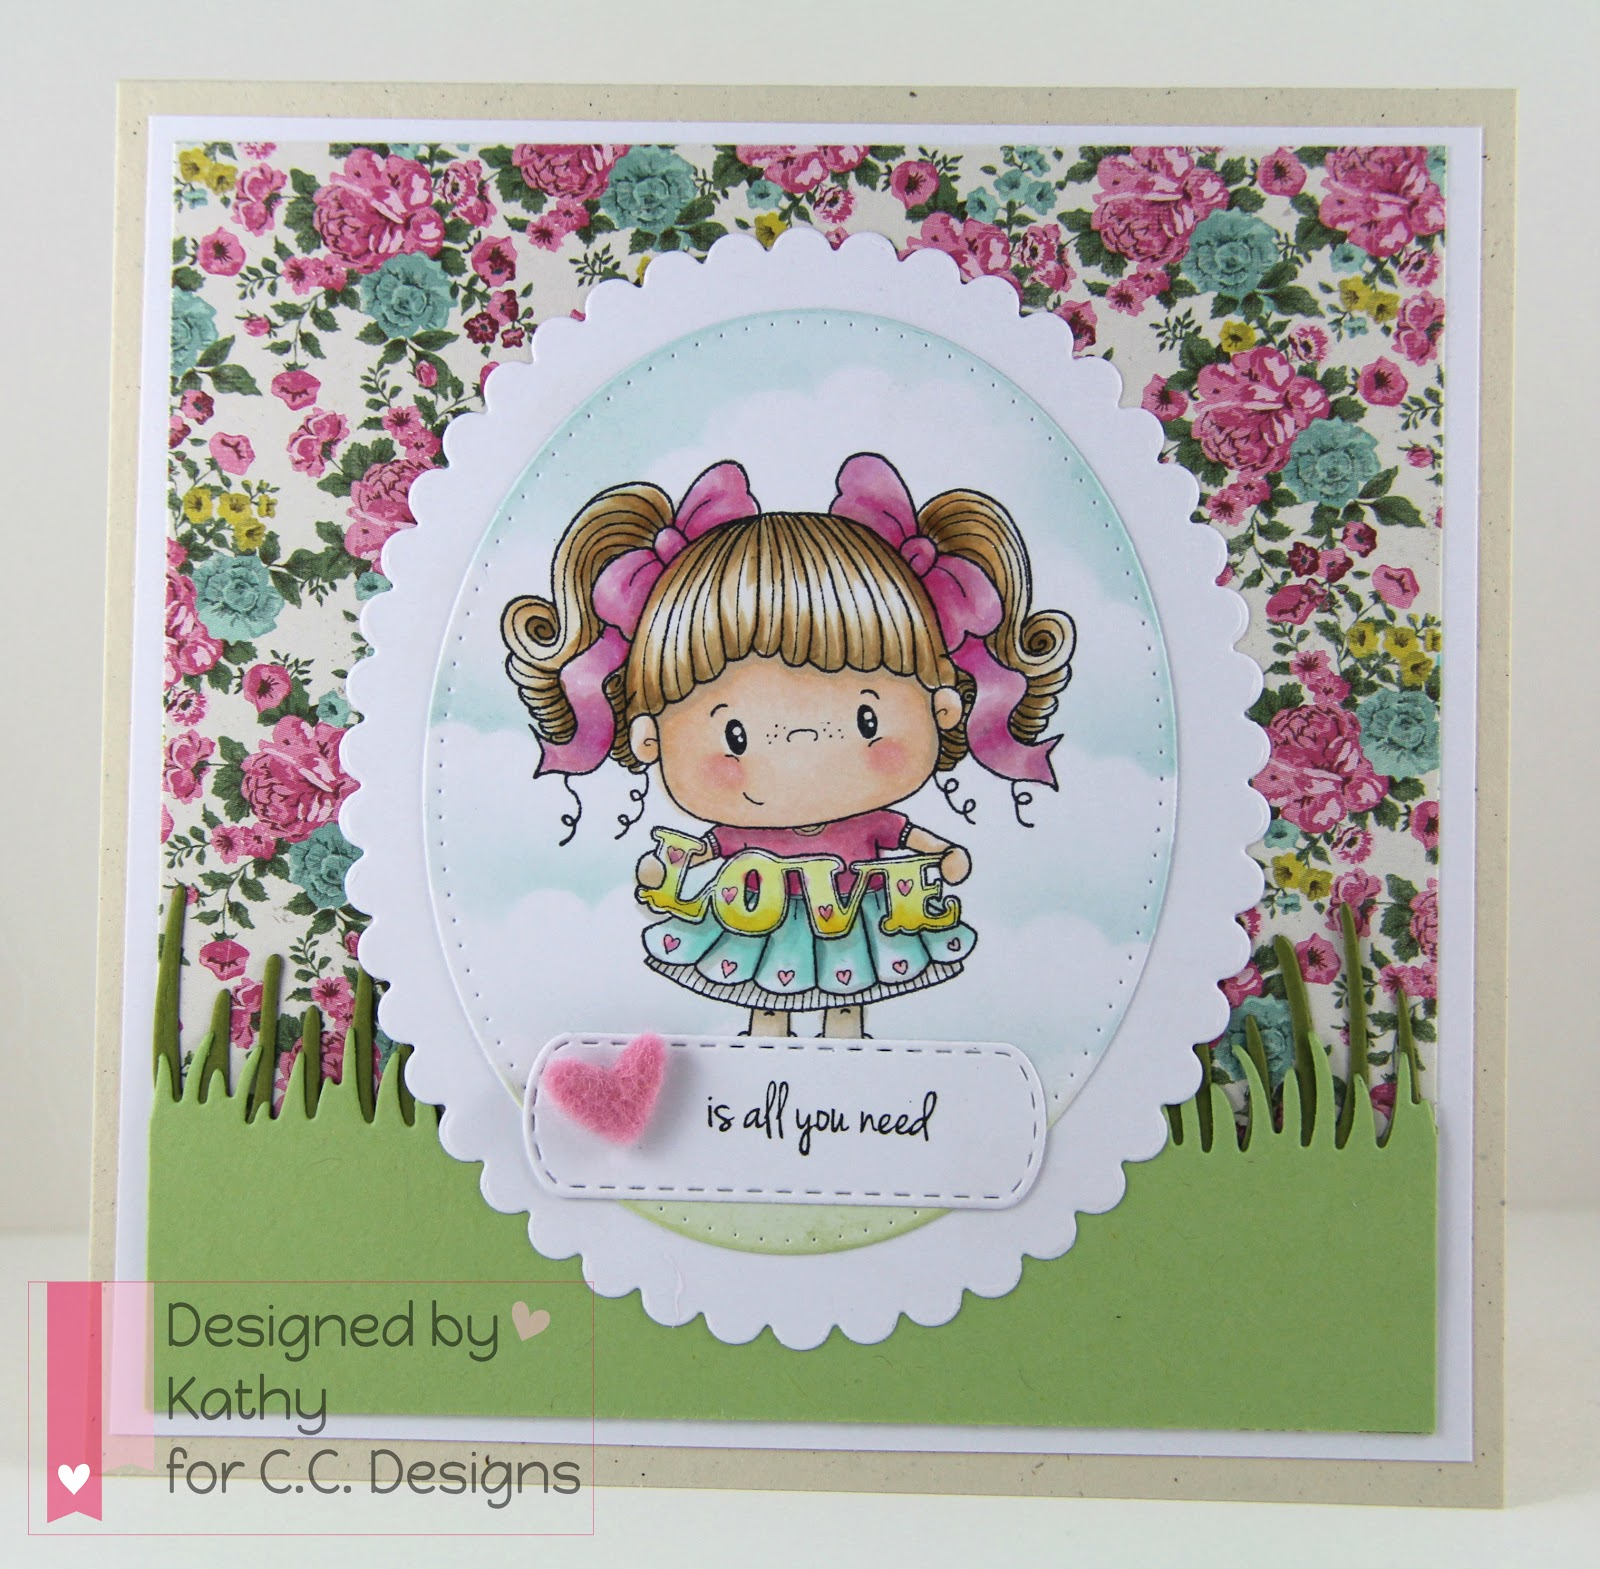 cc designs, pollycraft, freckles, make a card #2 die